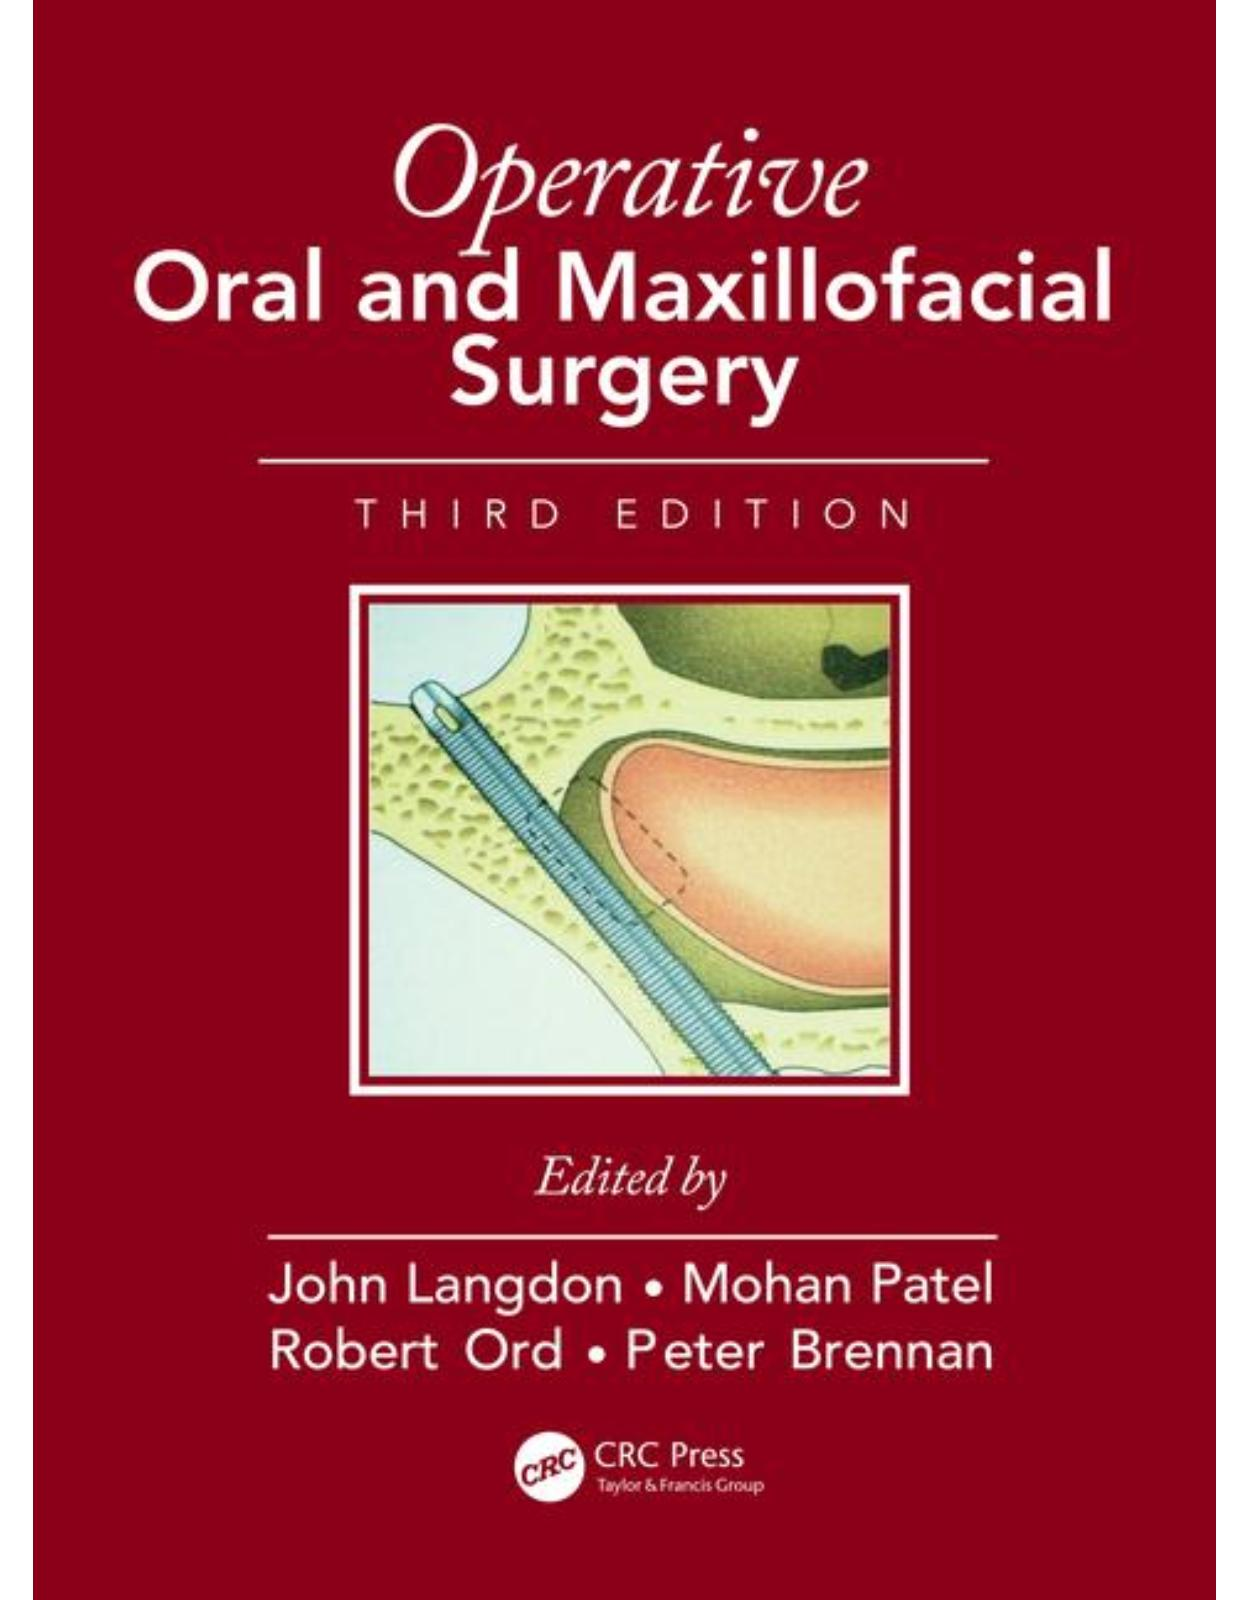 Operative Oral and Maxillofacial Surgery, Third Edition